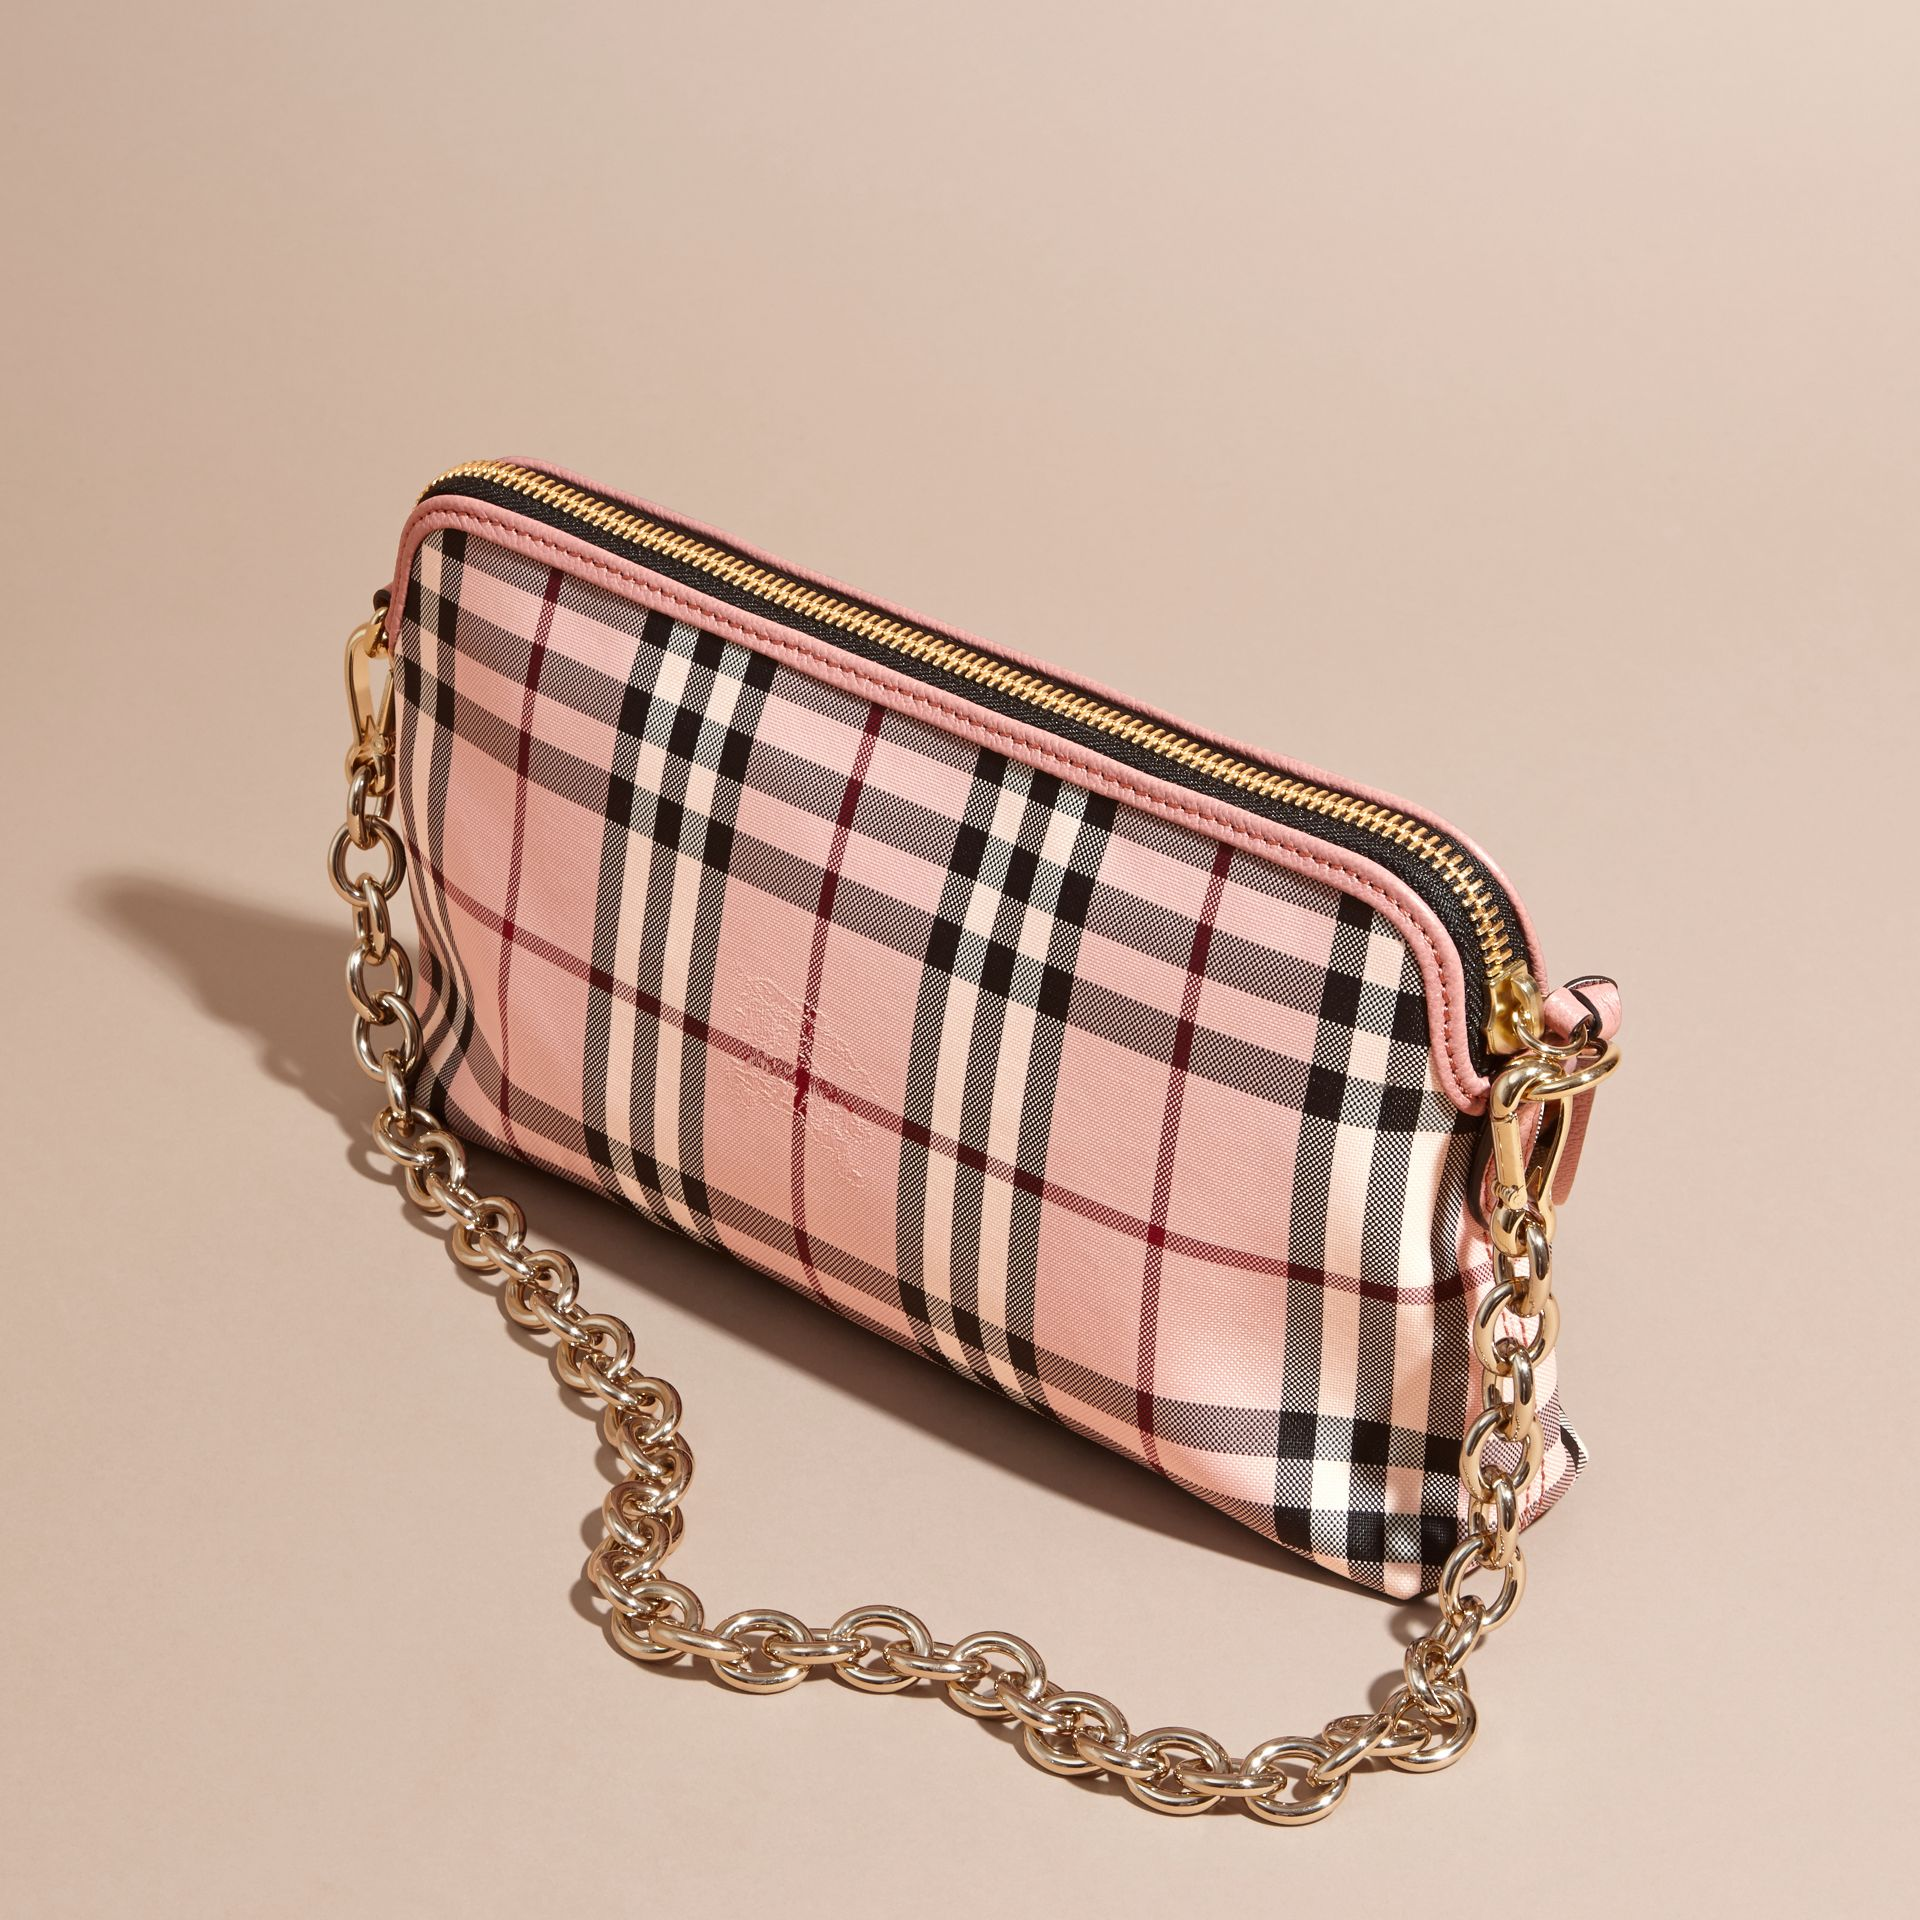 Ash rose/ dusty pink Overdyed Horseferry Check and Leather Clutch Bag - gallery image 5